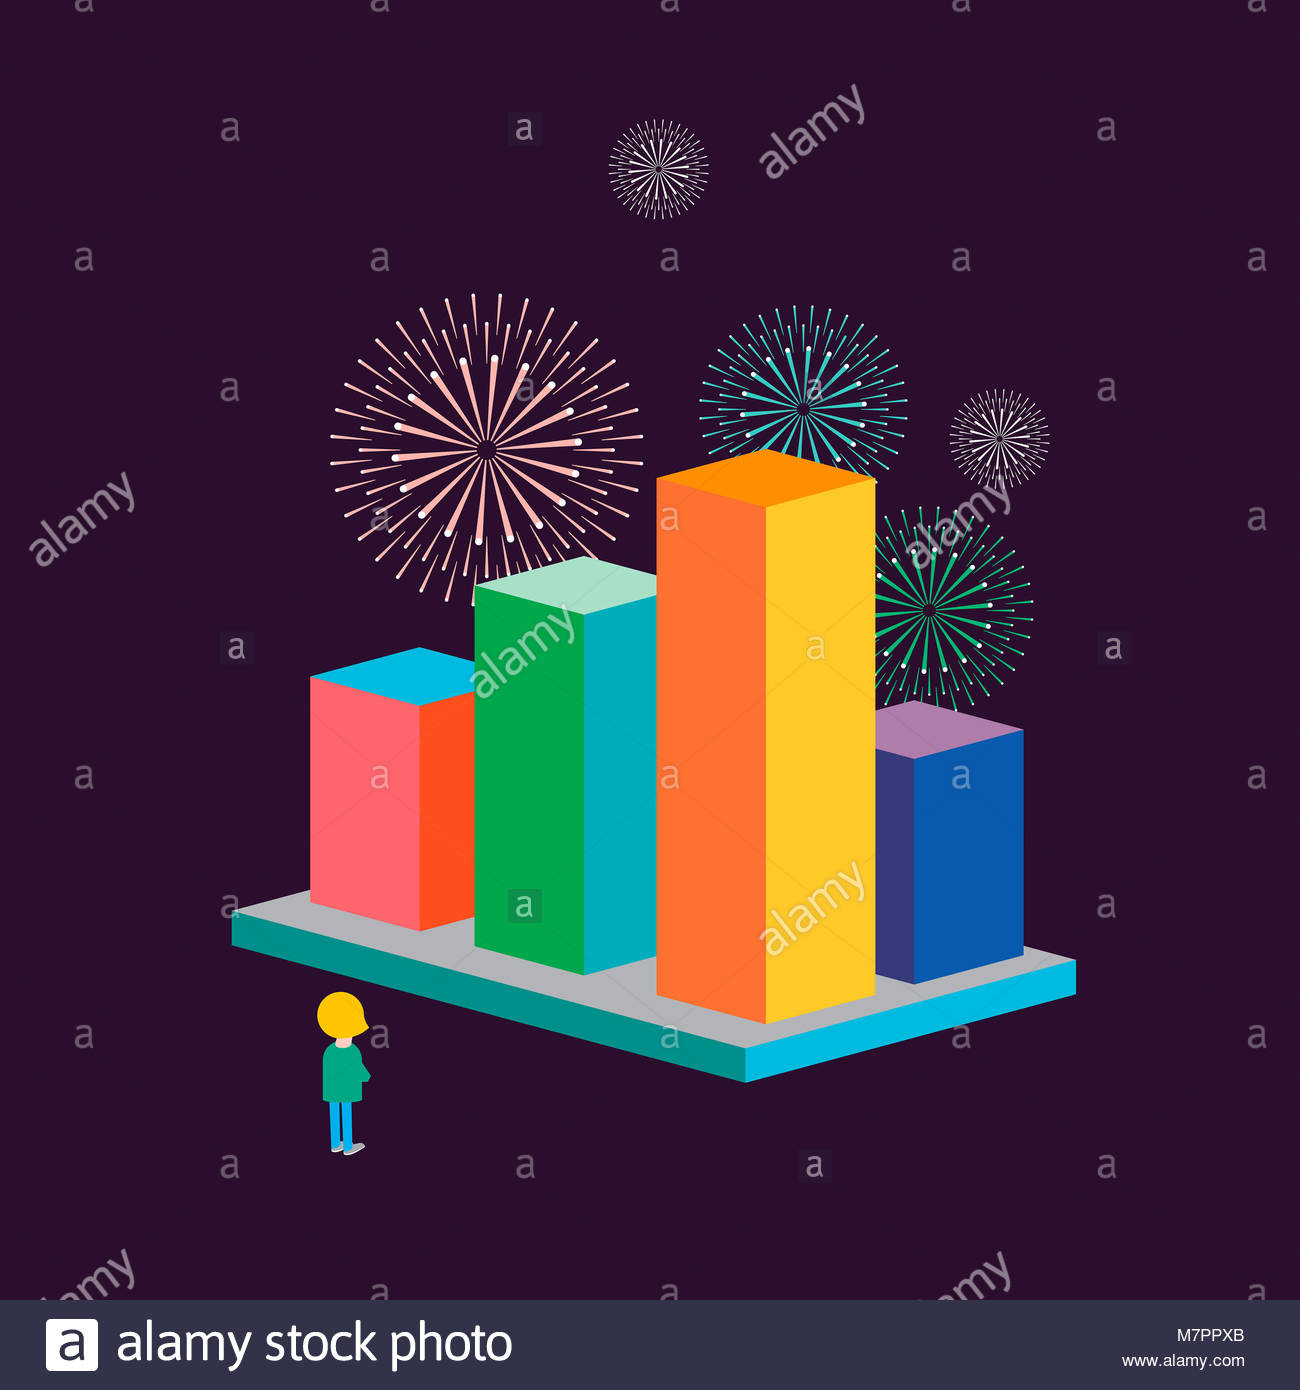 Fireworks above successful bar chart - Stock Image